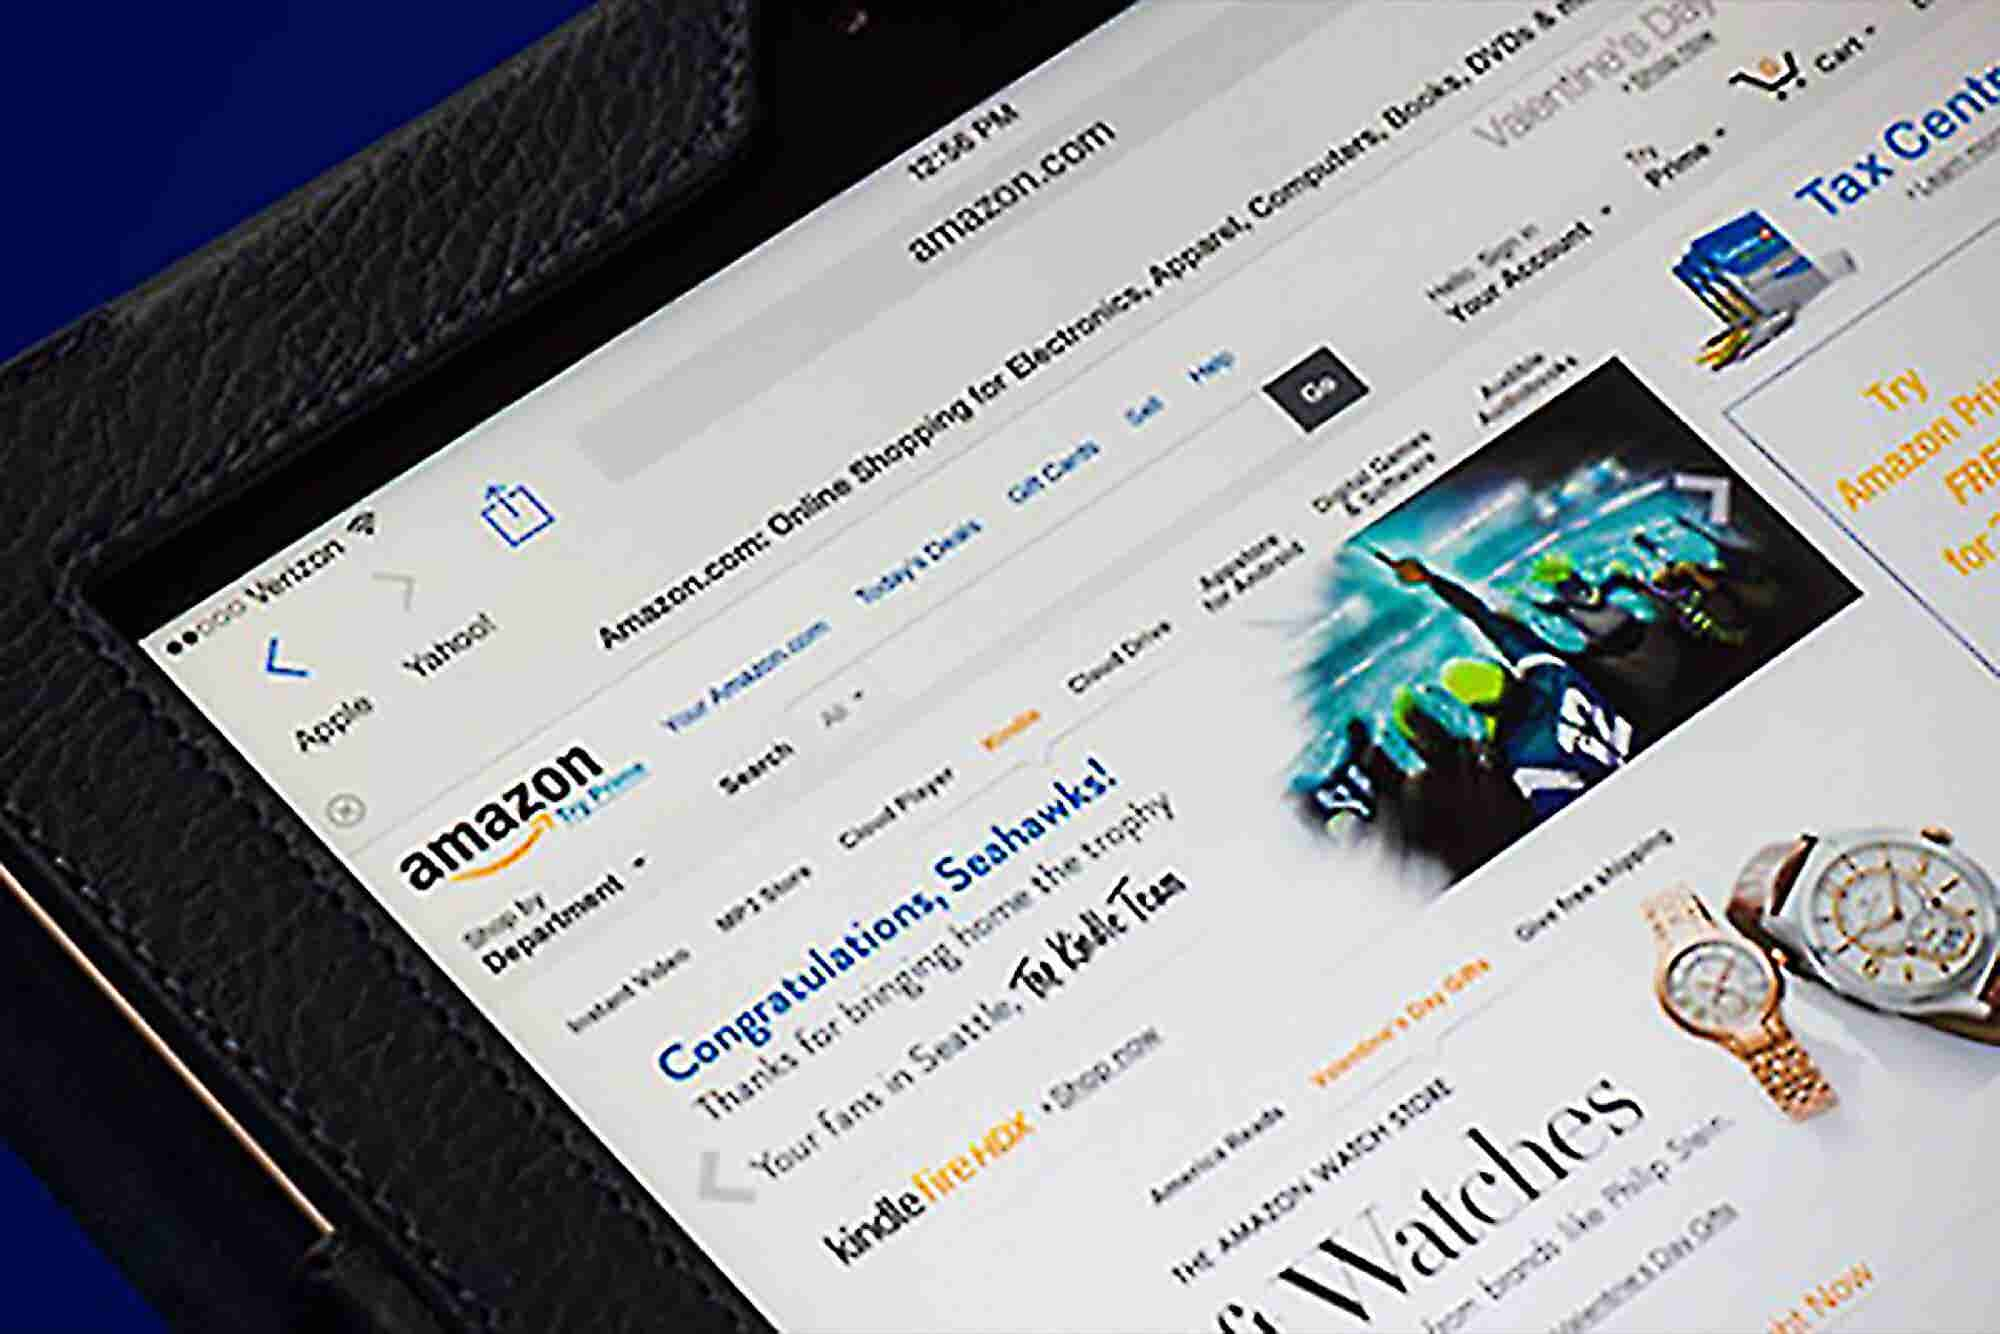 Amazon Is Overhauling Its Reviews System to Make It Much More Useful